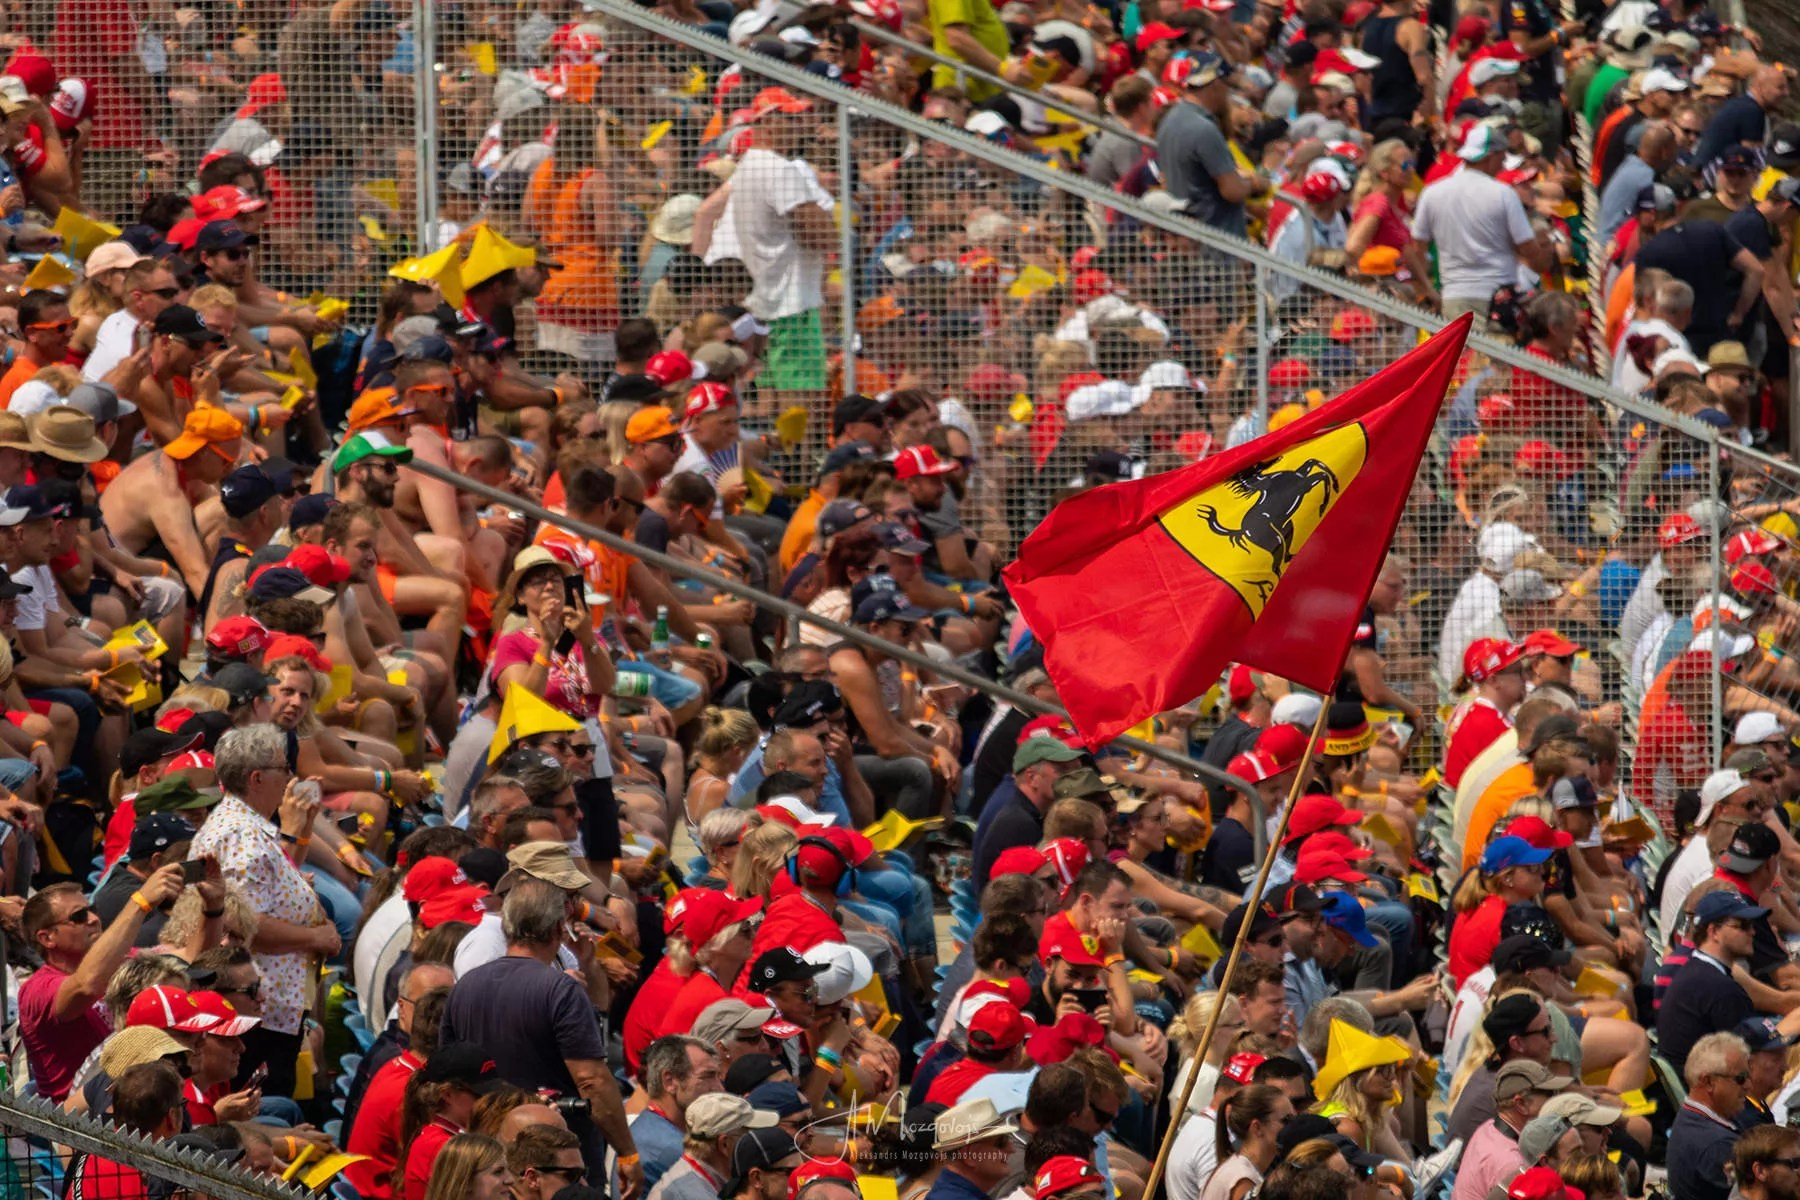 Fans at Hockenheim Grand Prix